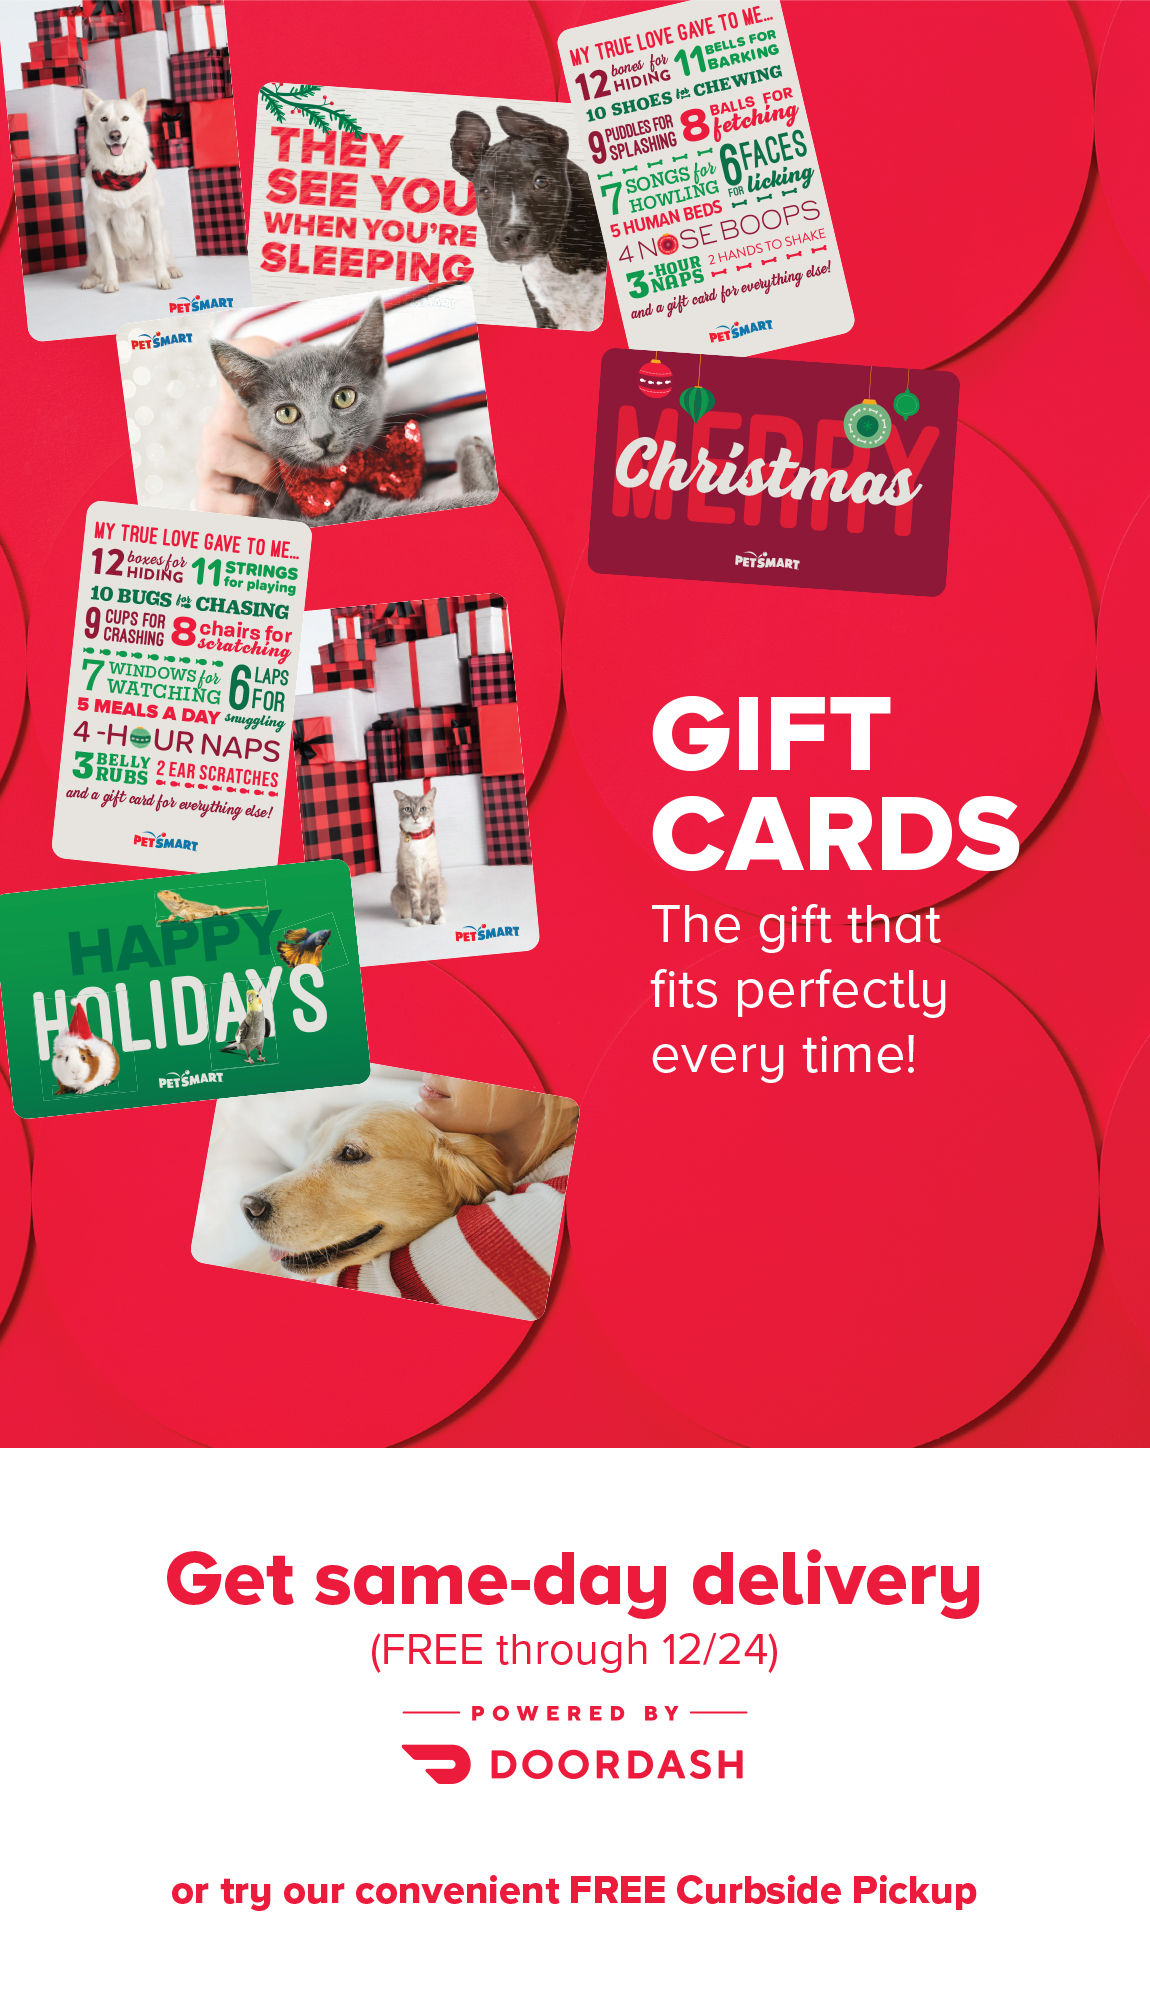 Gift Cards: The gift that fits perfectly every time